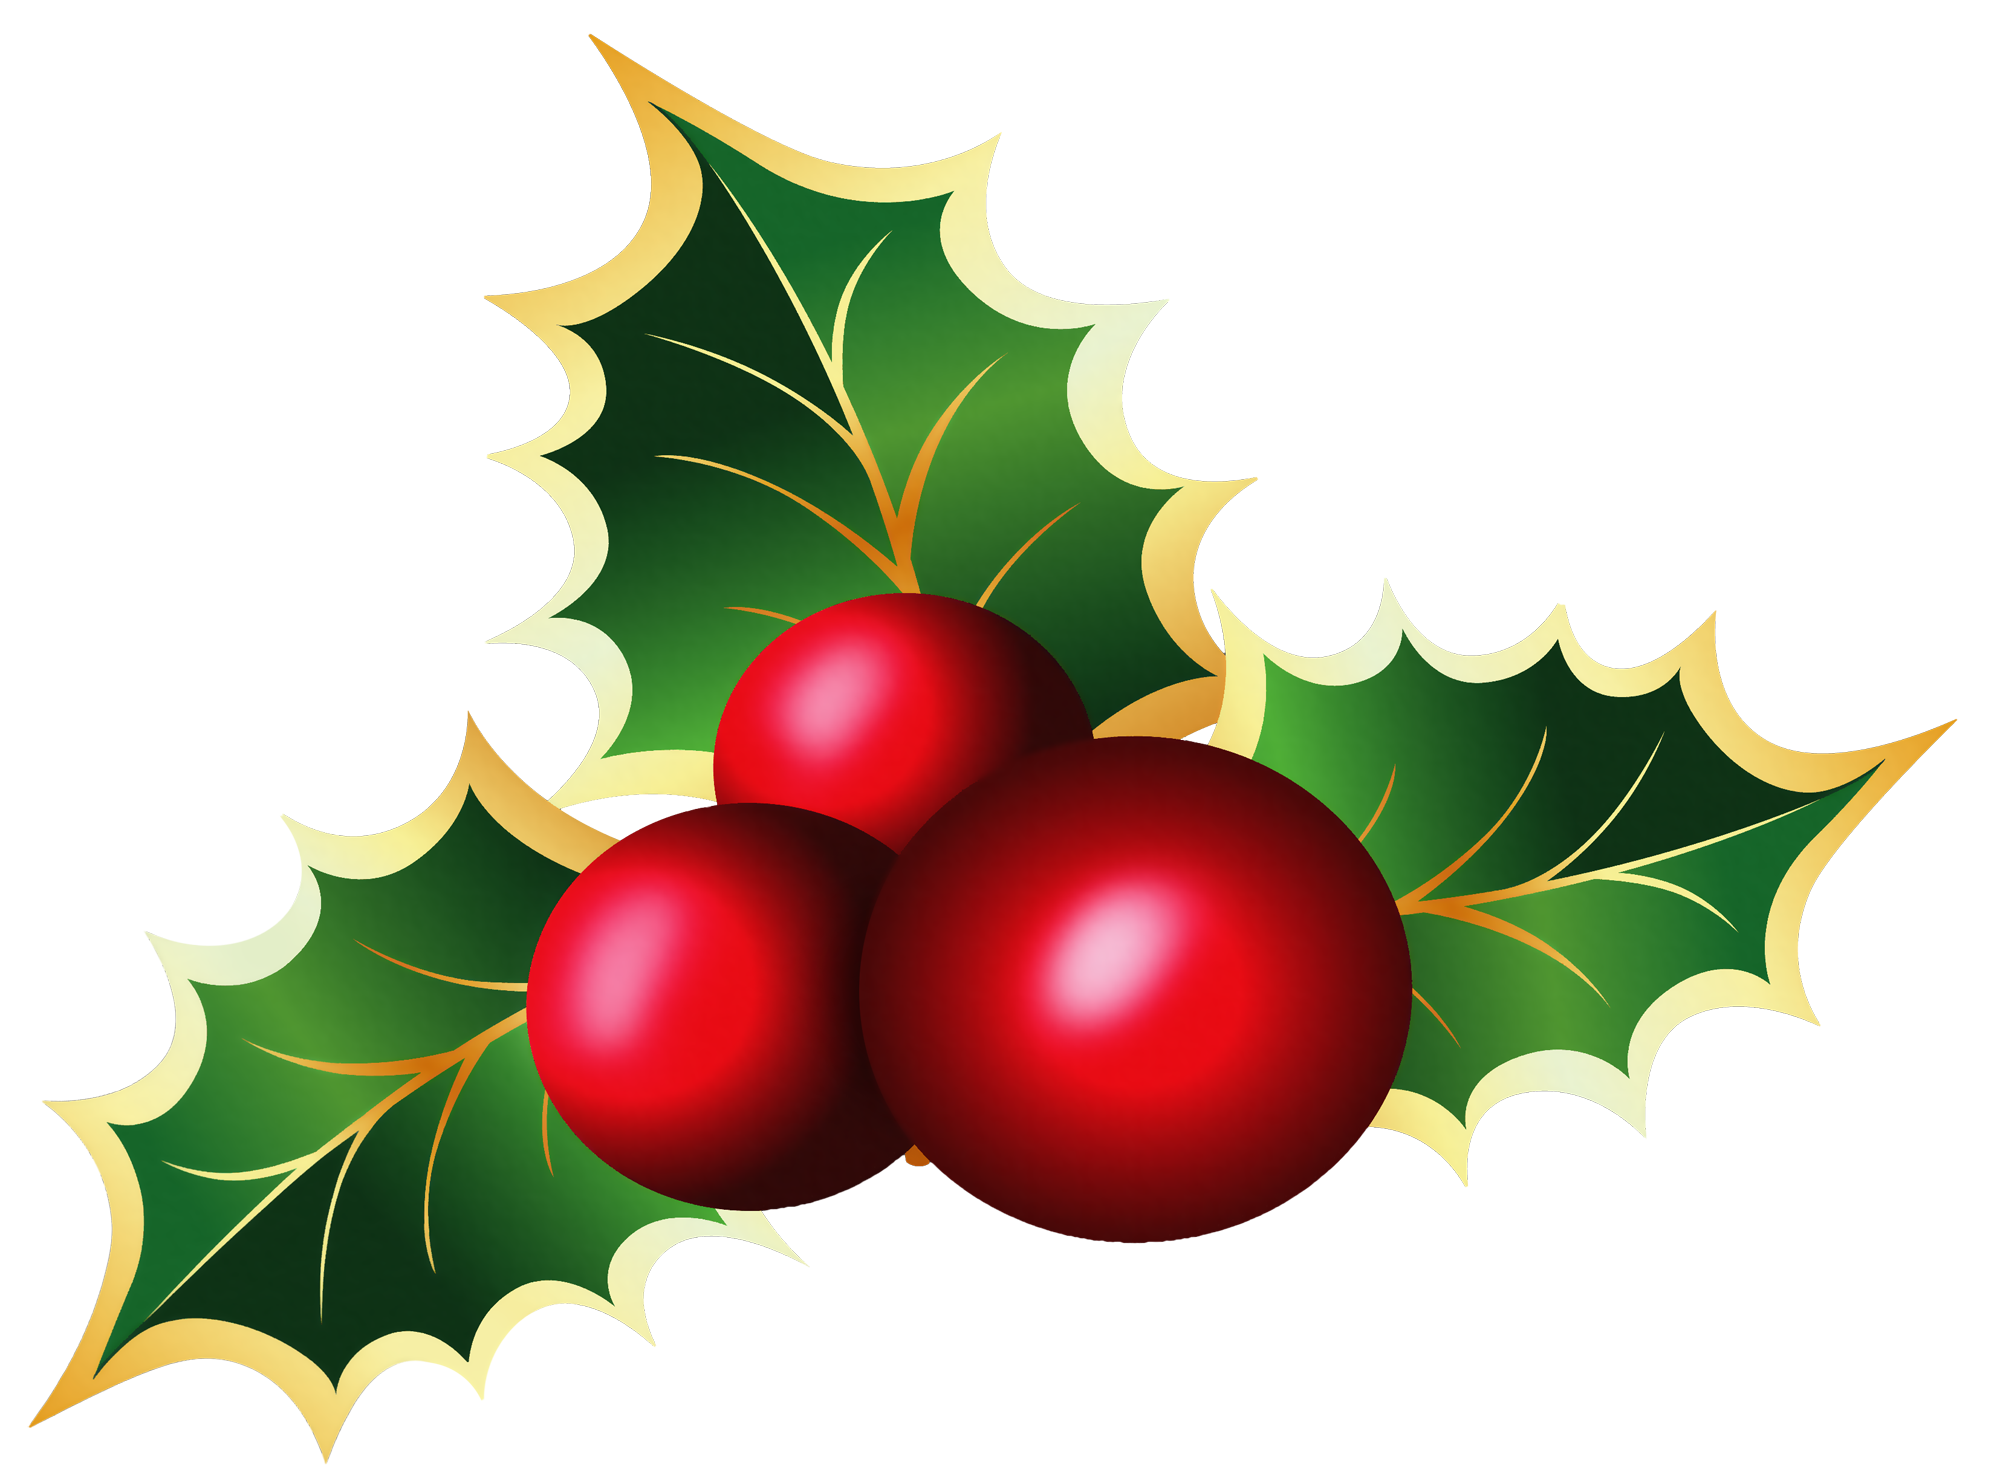 image black and white stock Transparent christmas png picture. Mistletoe clipart holly sprig.